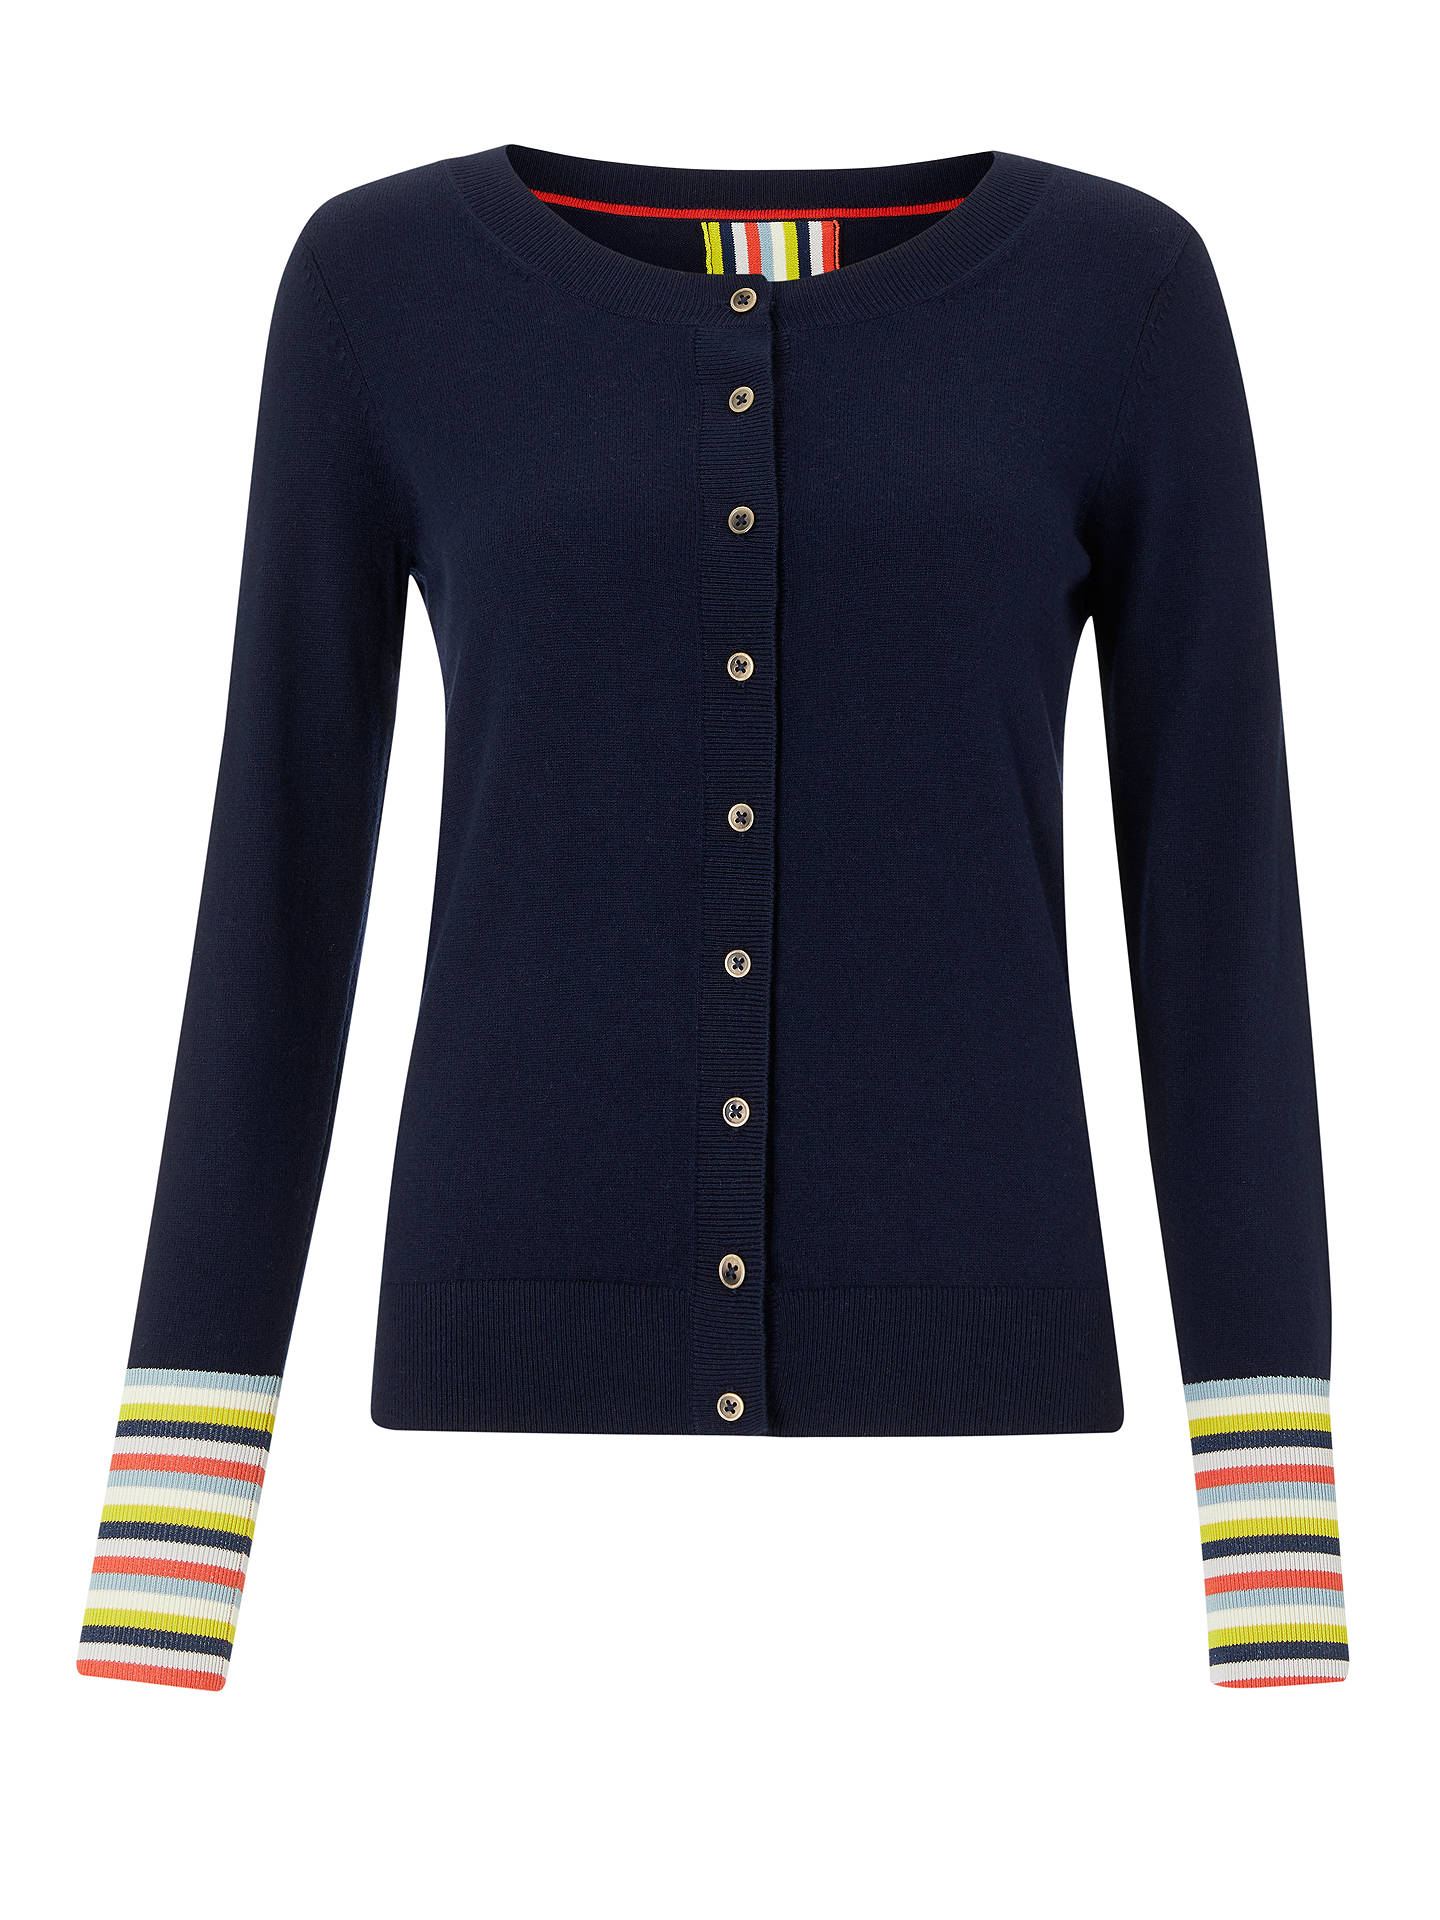 BuyBoden Cassandra Cardigan, Navy, XS Online at johnlewis.com